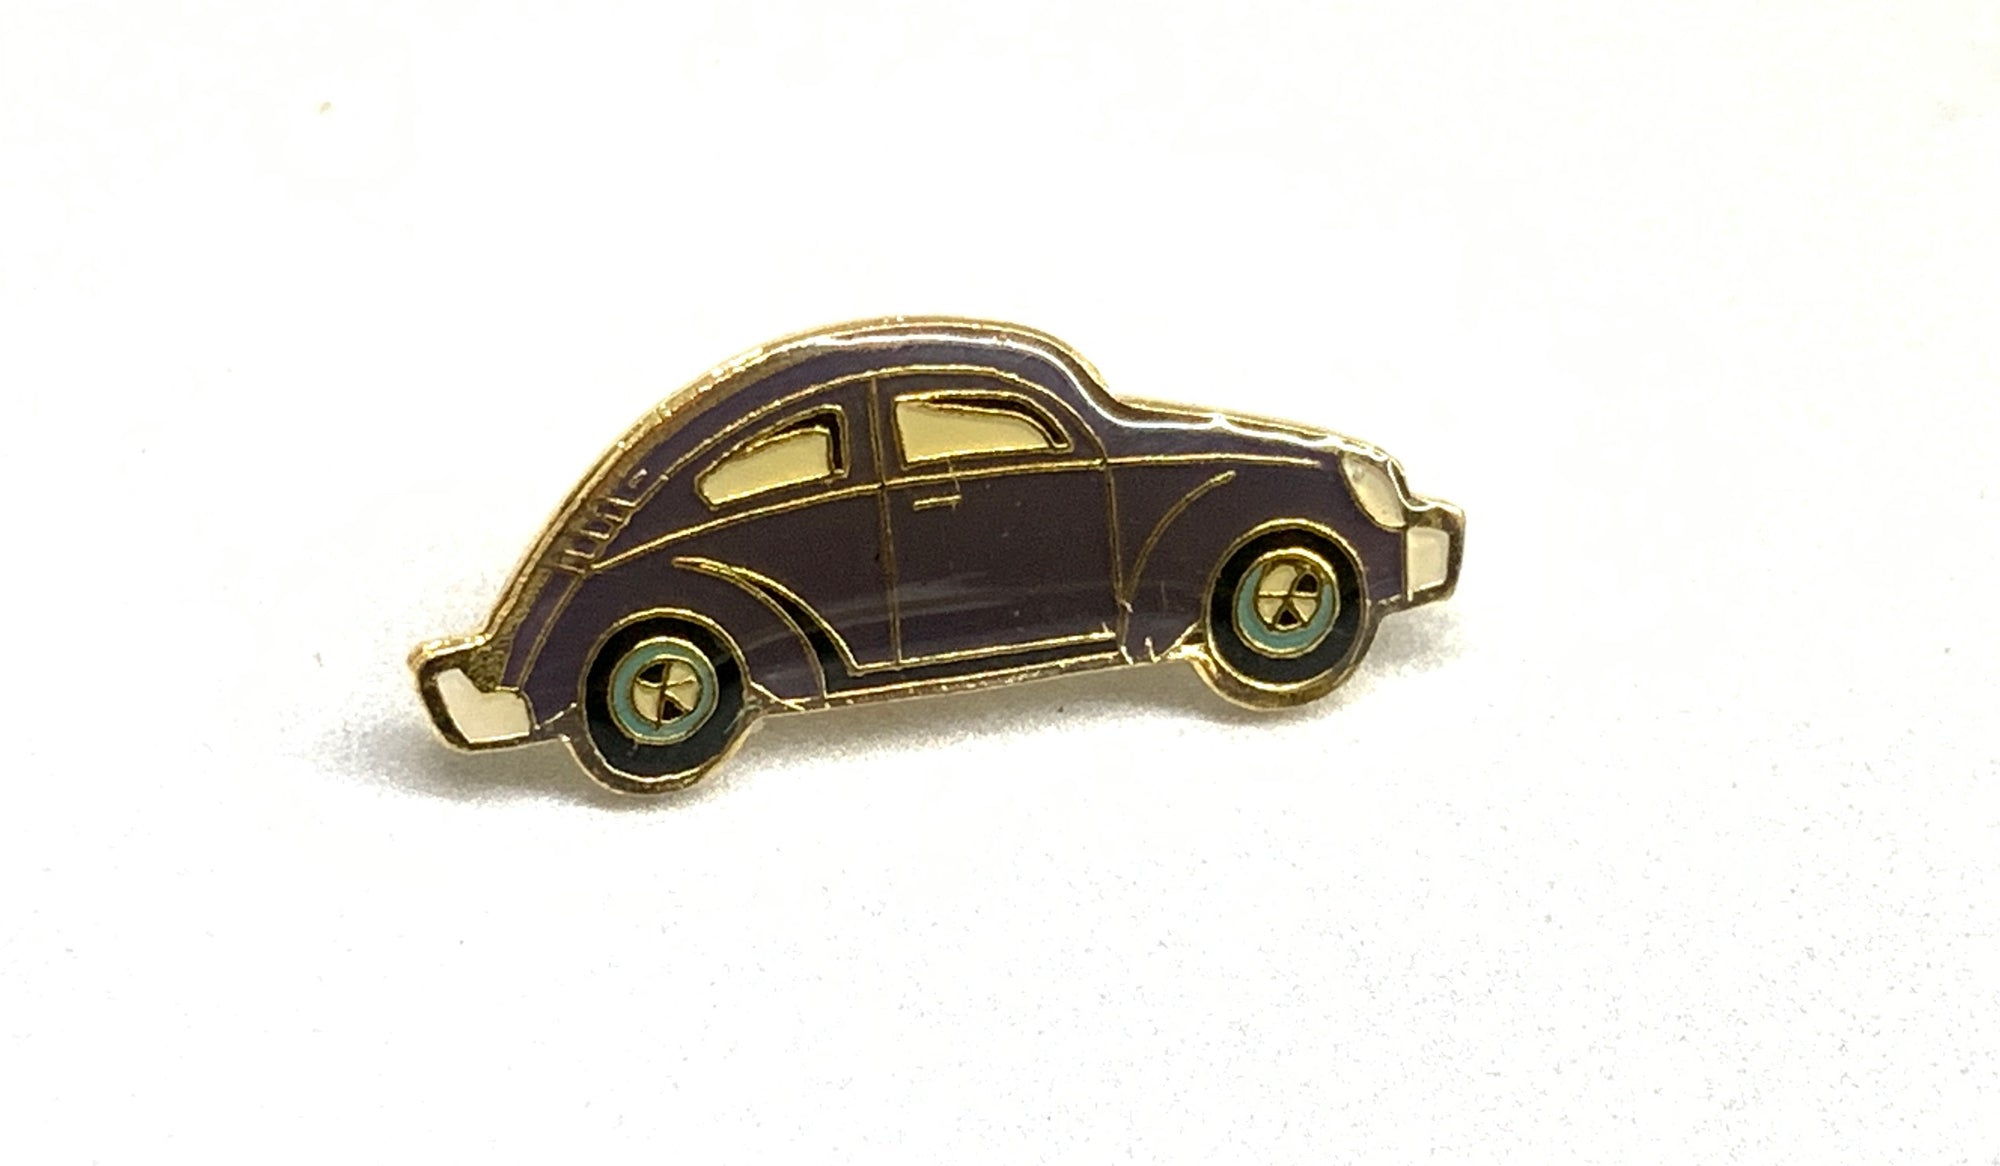 Green Beetle Lapel / Hat / Jacket Enamel Pin